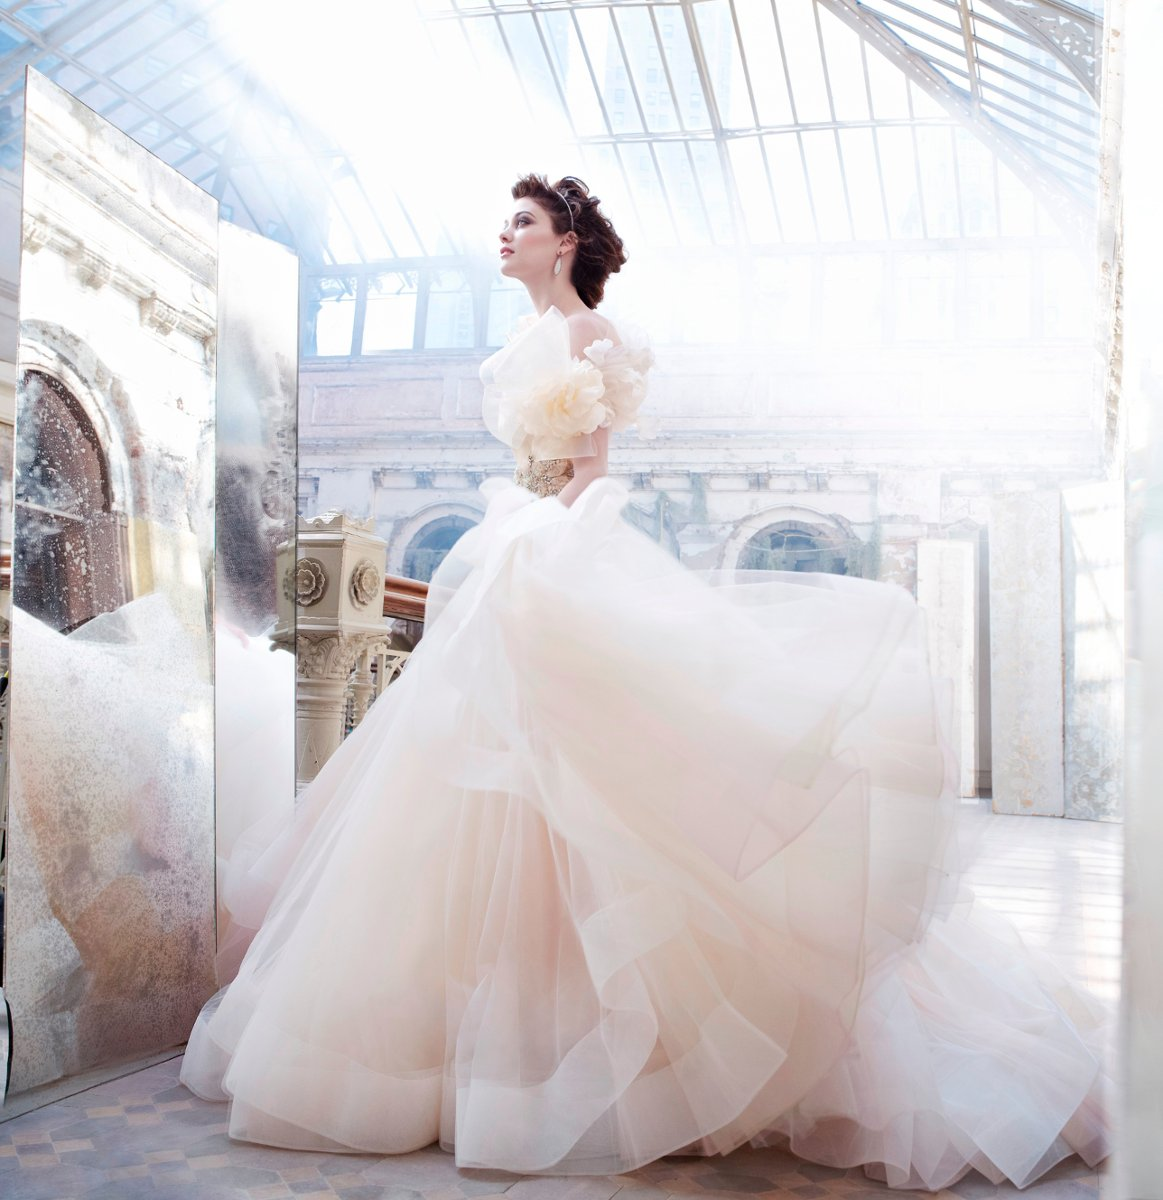 WhiteAzalea Elegant Dresses Dreamlike Fairy Tale Wedding